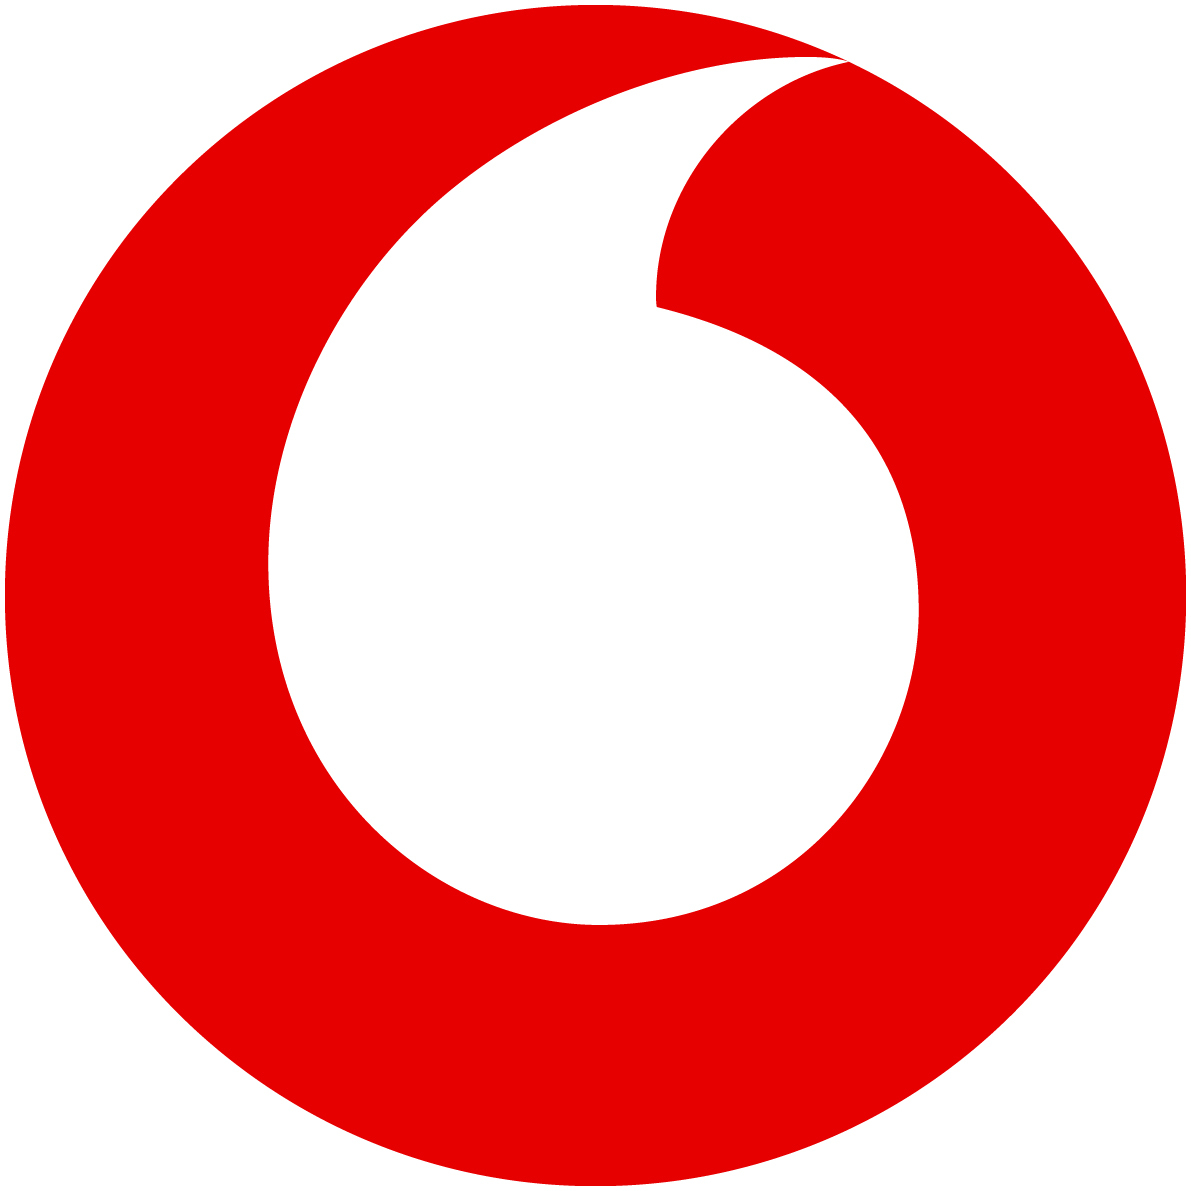 Vodafone and cityfibre bring gigabit speed fibre to the uk email cityfibrevigocomms or trade and regional media weber shandwick tel 07738 086 818 email dowenwebershandwick thecheapjerseys Choice Image